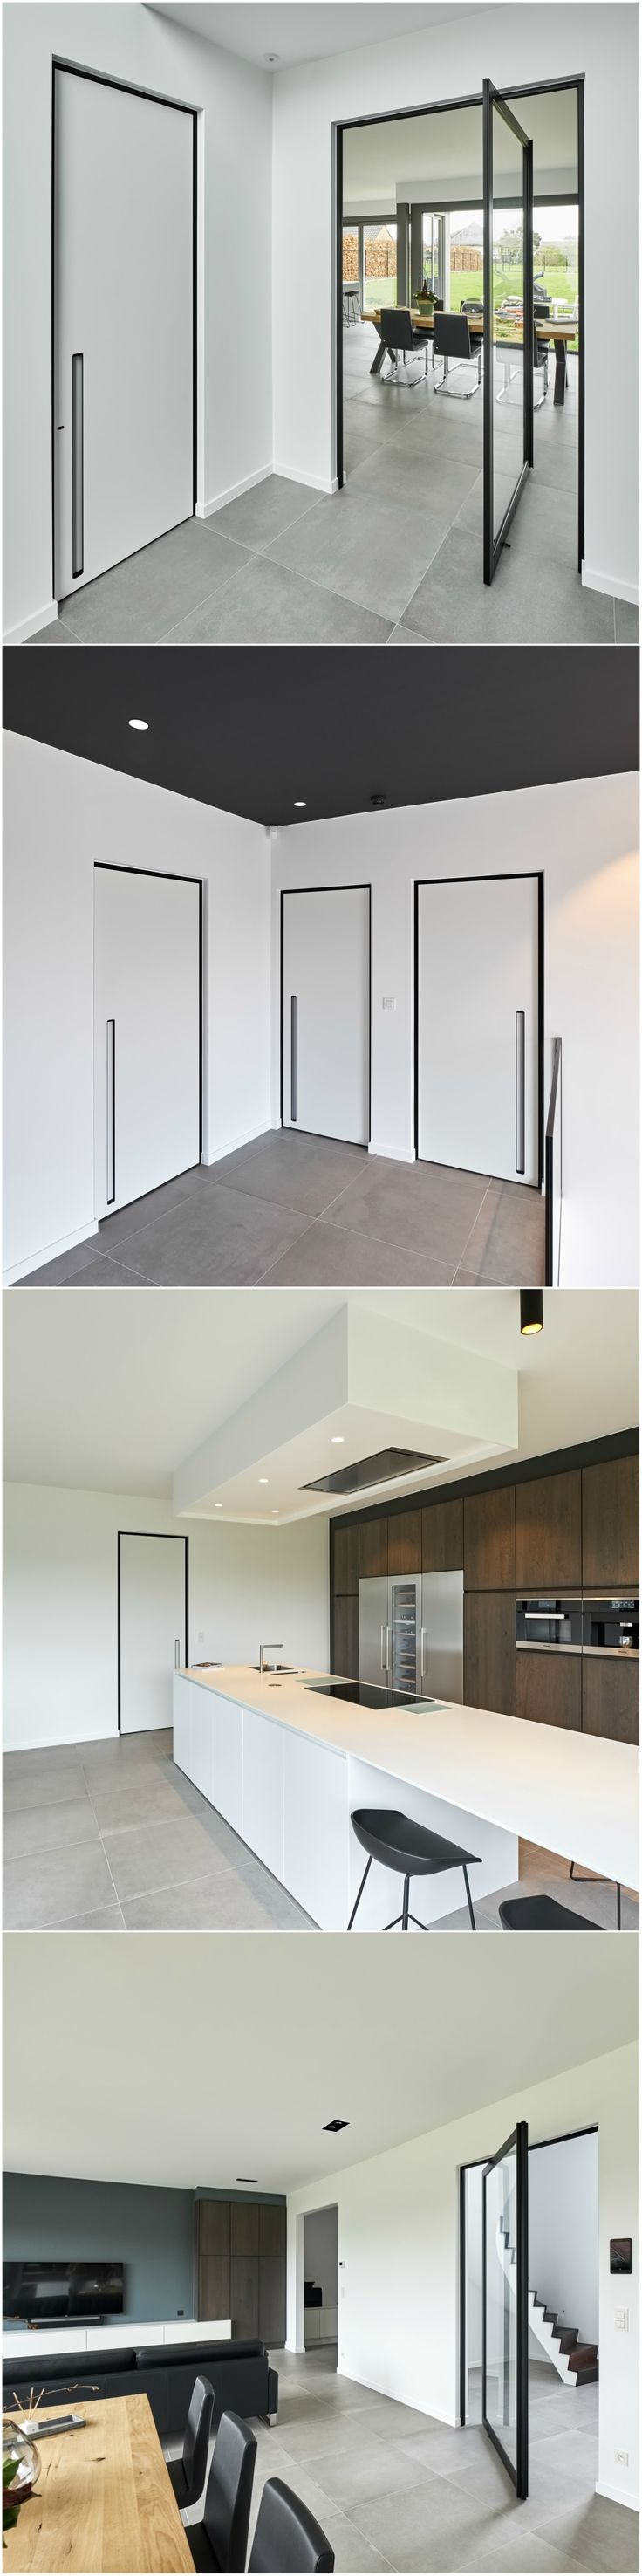 "Modern interior doors ""black & white"" designed by ANYWAYdoors.  These door all feature the same black minimal anodised aluminium BKO door frame. The plain doors are finished in a white Resopal Massiv panel RAL9016 and a built-in vertical door handle. The glass pivot door features a black anodized ""steel look"" frame and transparent tempered glass. #moderndoors #designdoors"